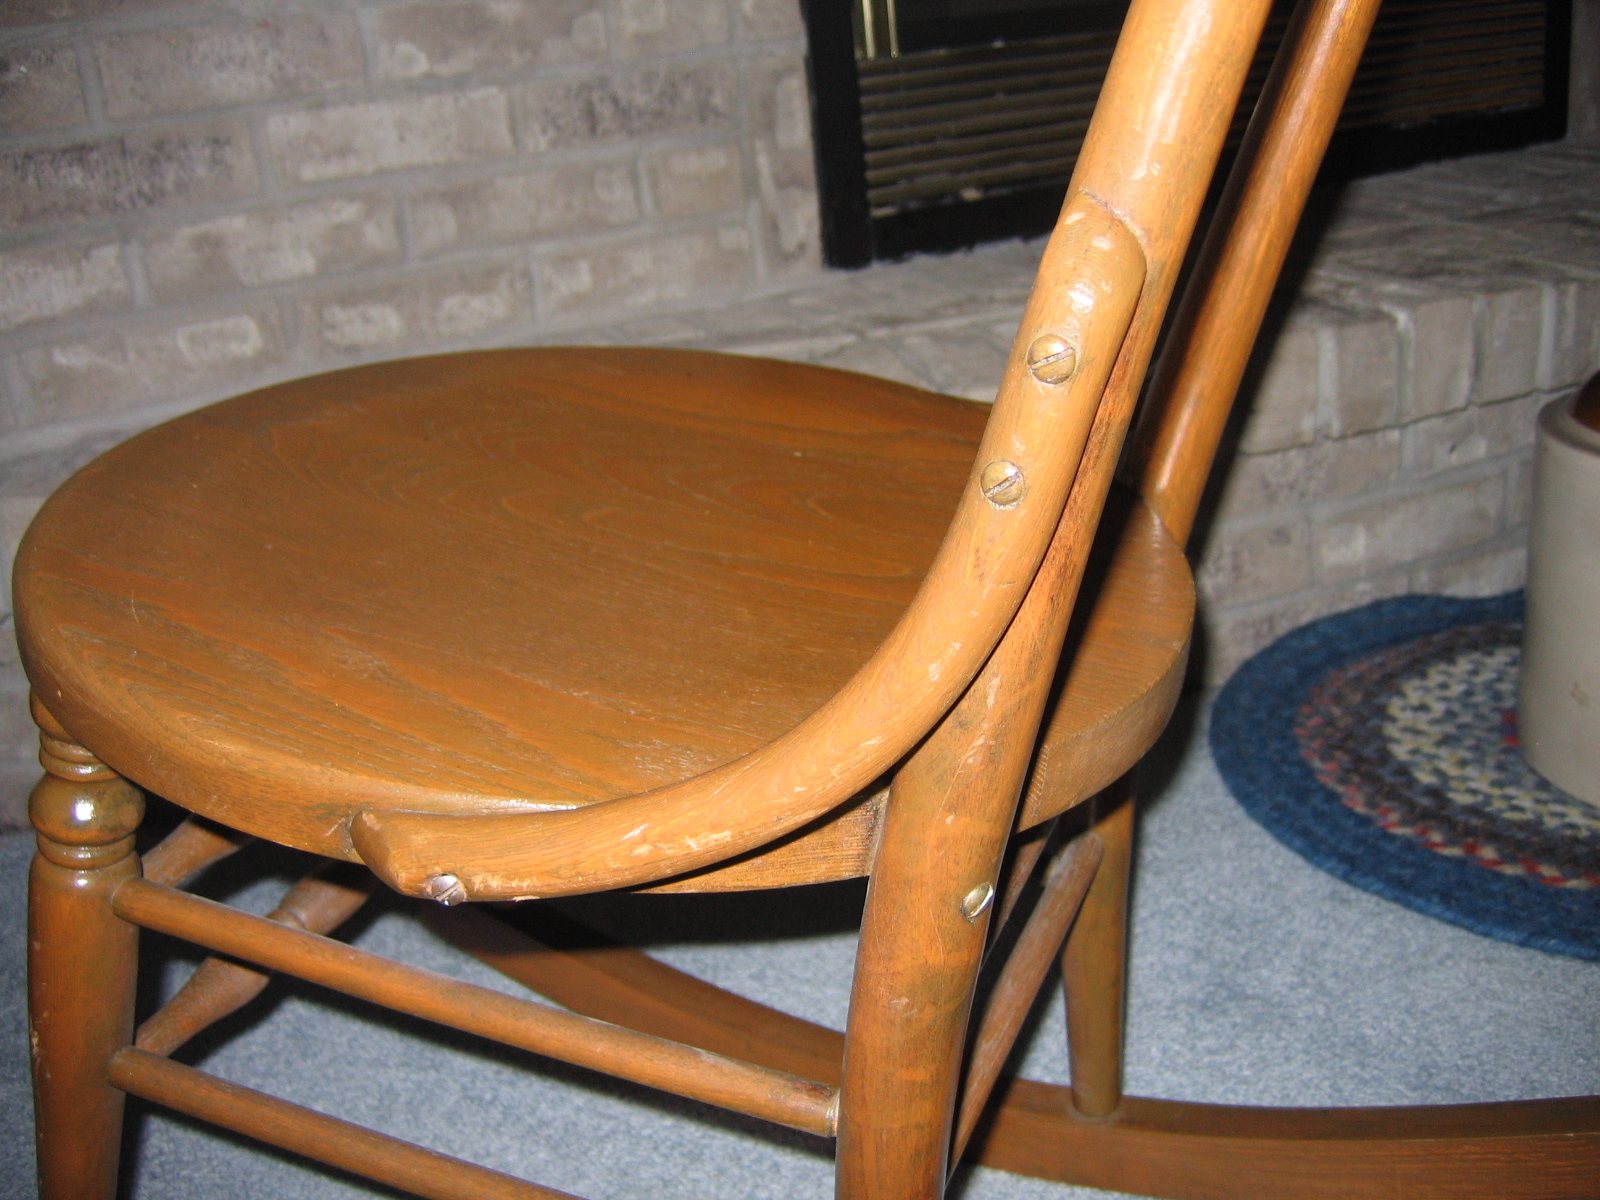 antique rocking chairs for sale office chair attached table vintage ladies knitting wood item 811